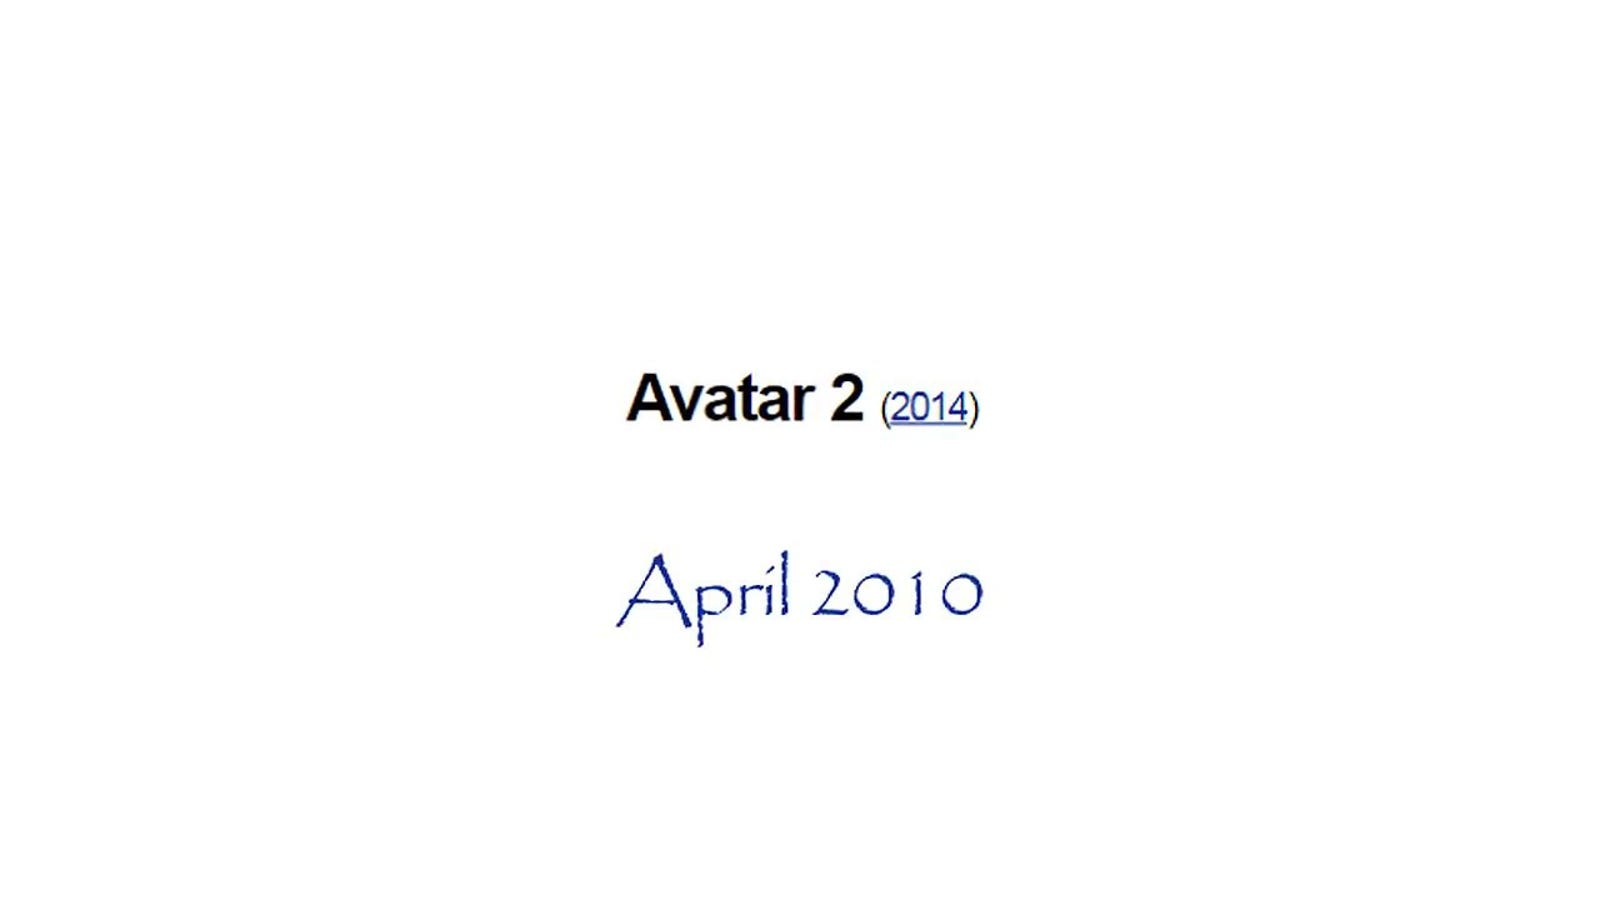 Avatar 2 is never coming out, Neil Cicierega reports